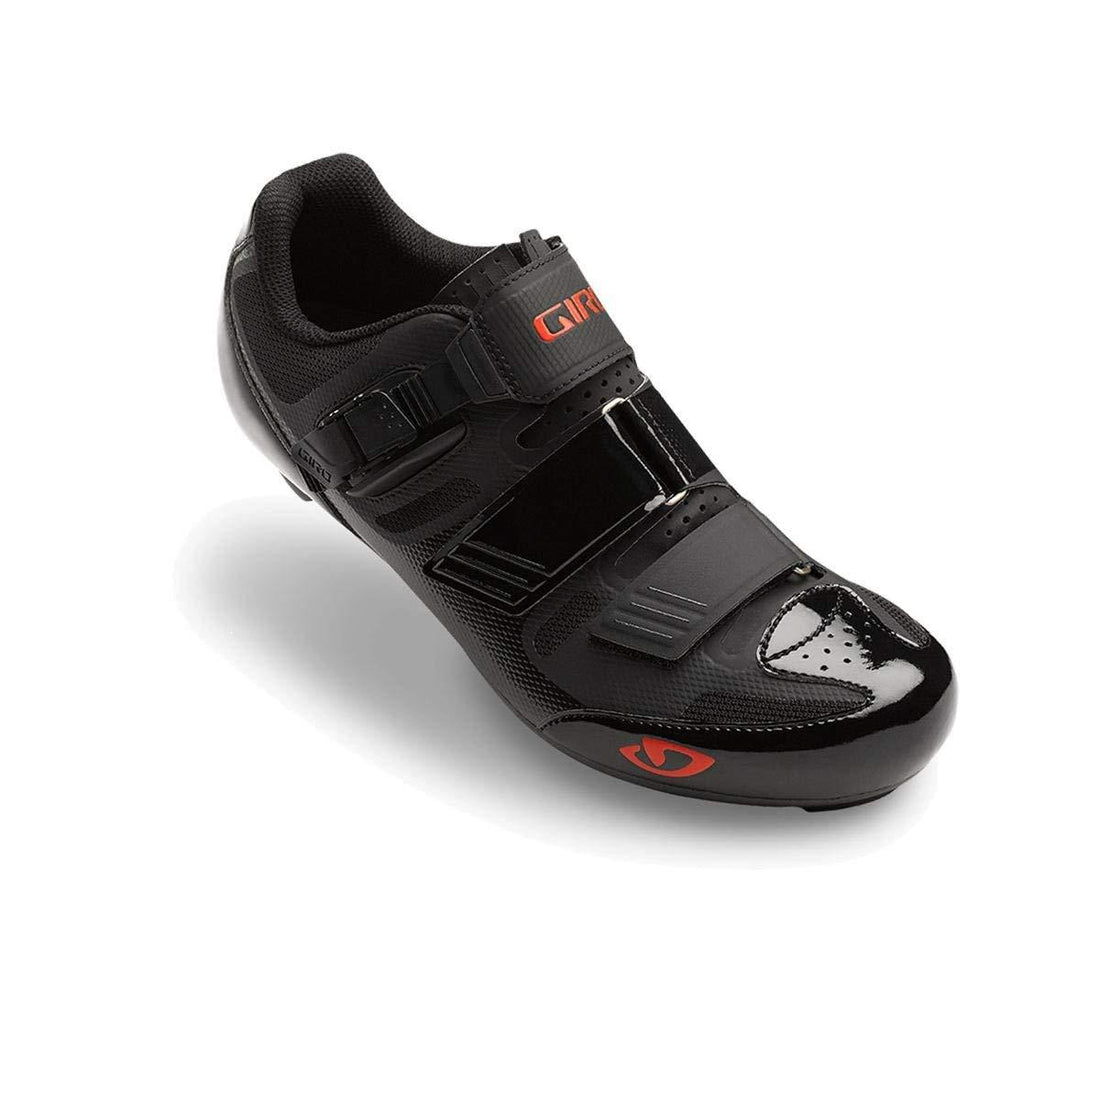 GIRO Apeckx II Black/Red 46